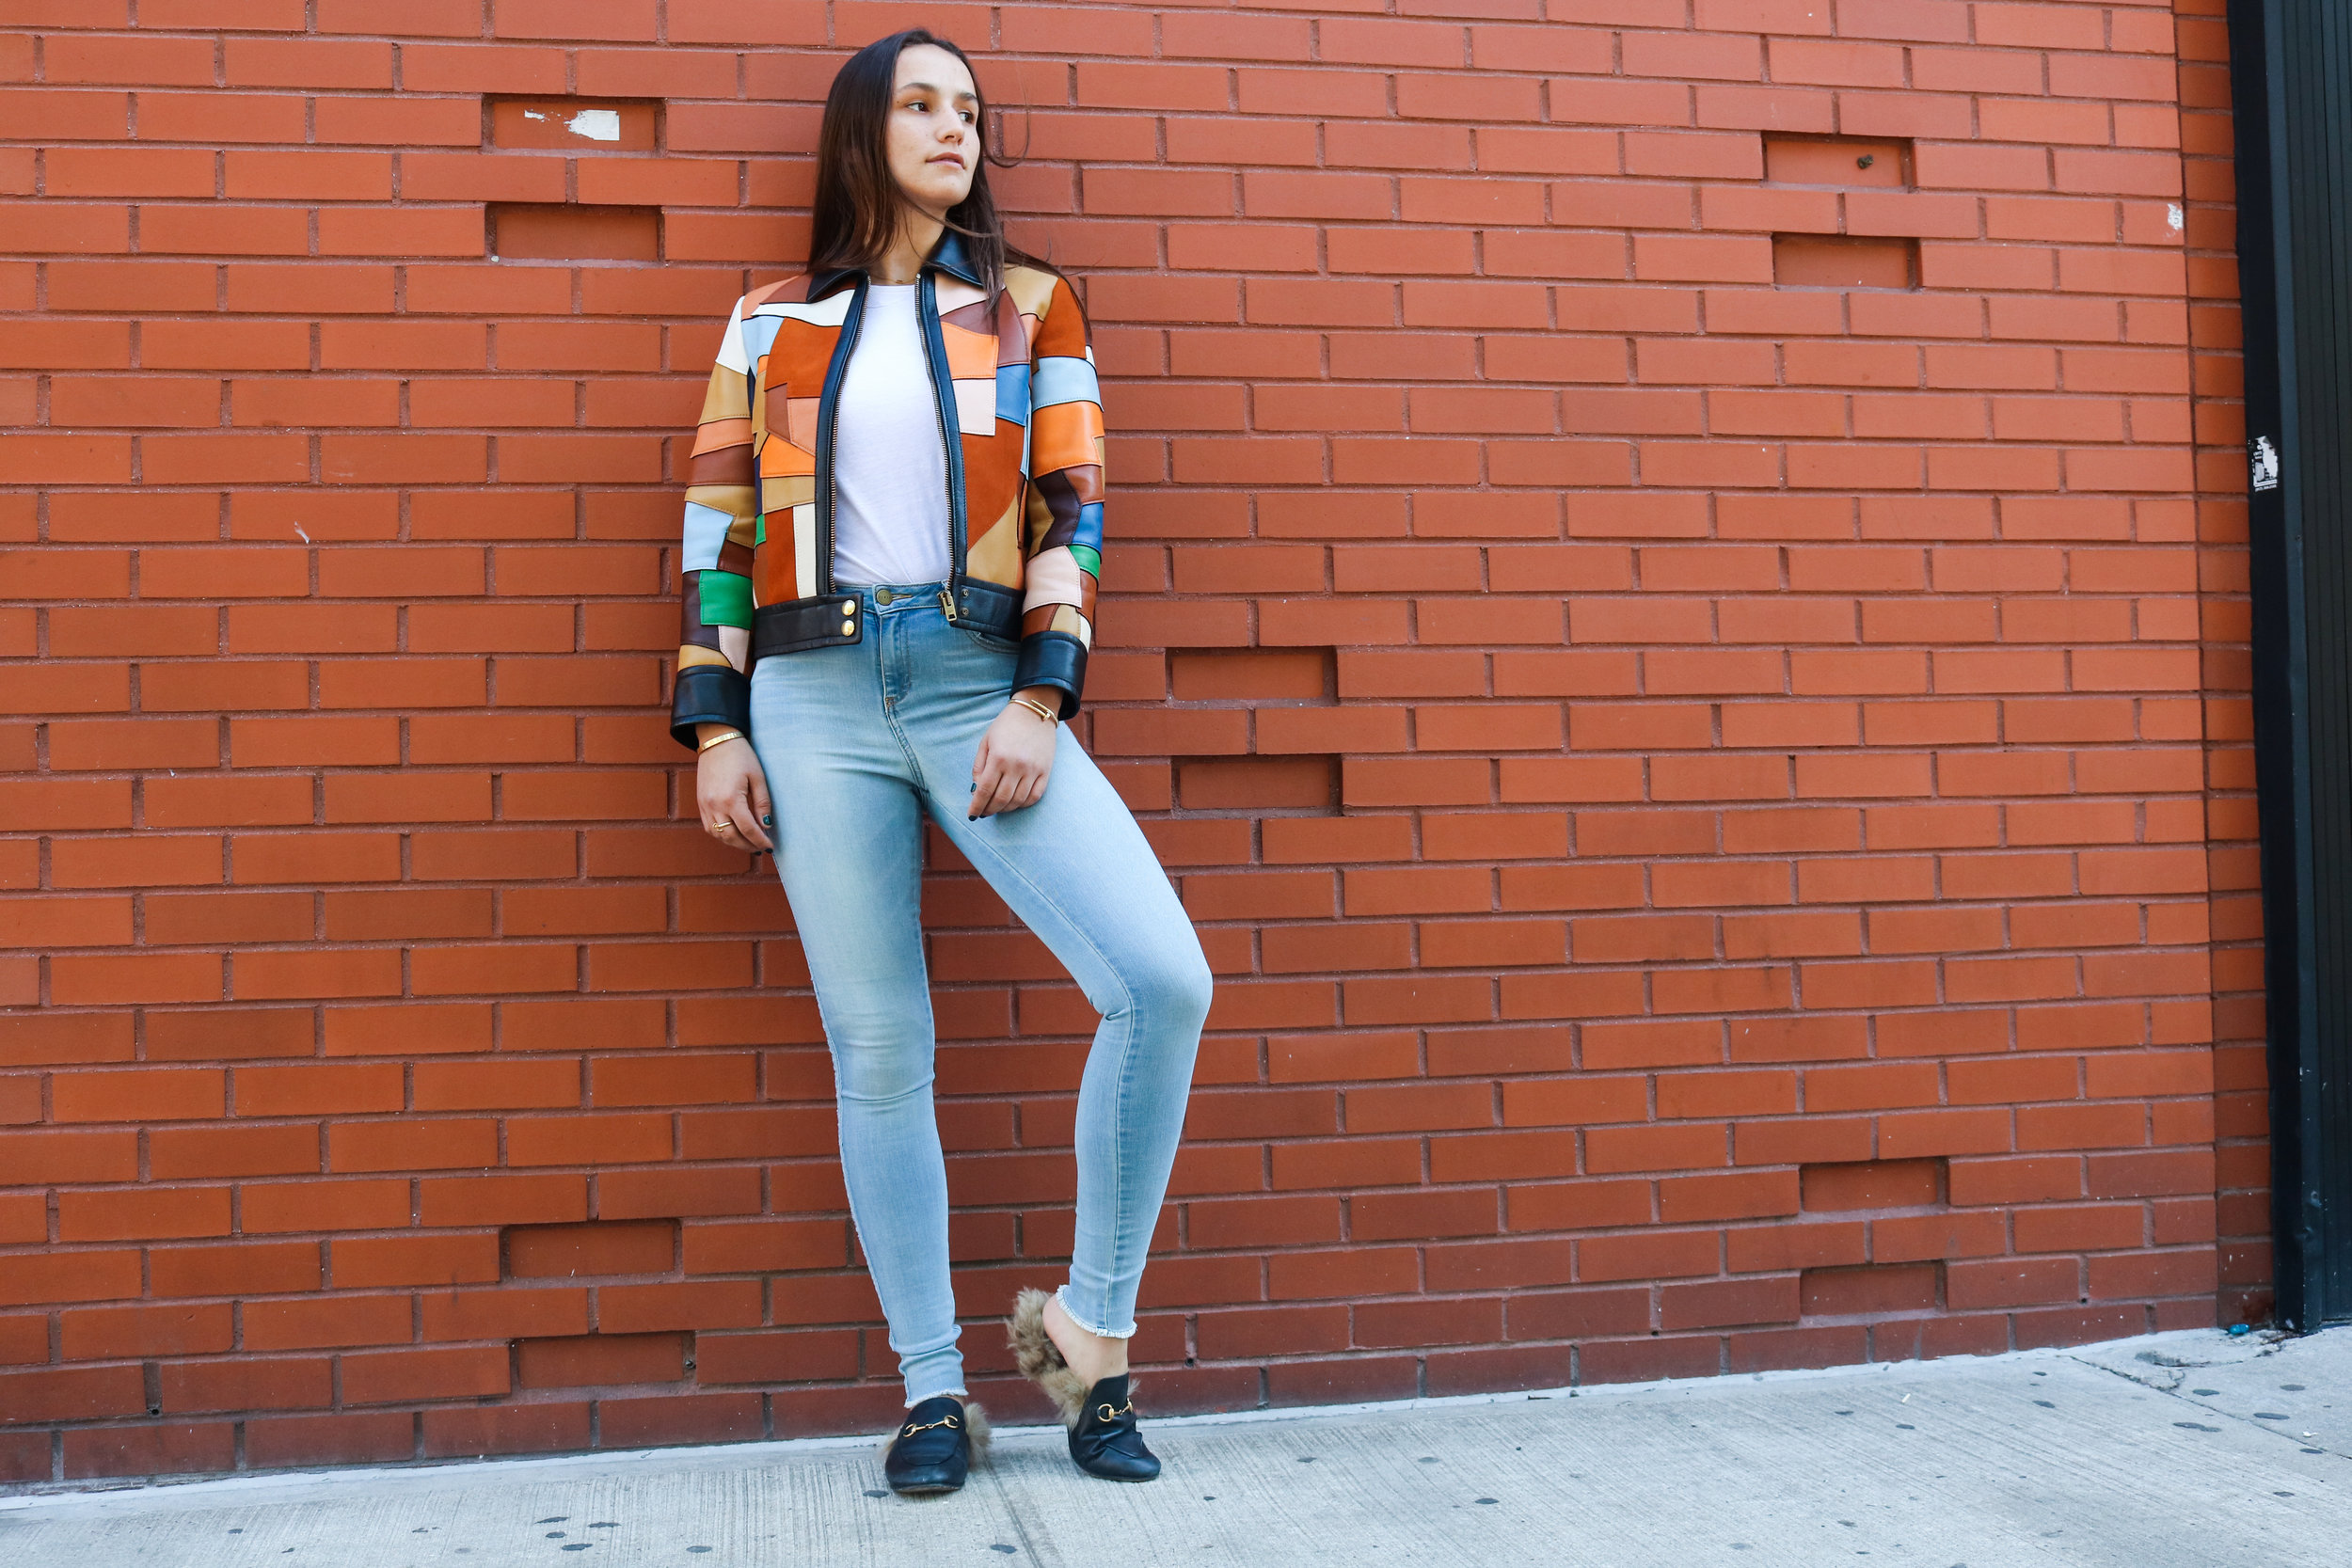 SOPHIE BICKLEY YIN 2MY YANG SISTER FASHION BLOGGERS NYC JOMAD POST